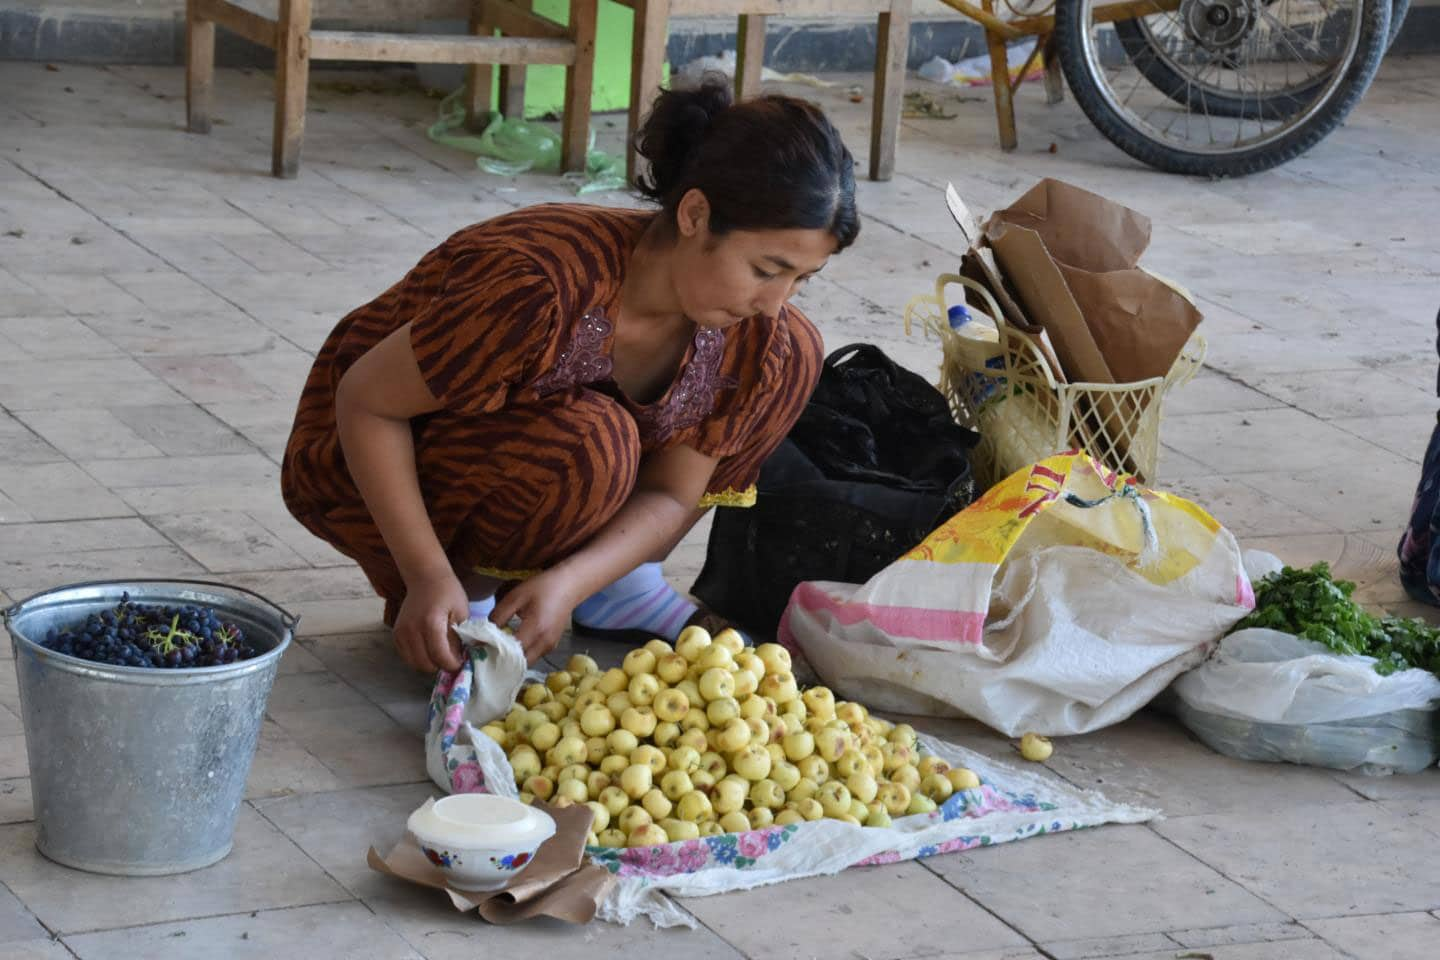 Venders in every Central Asian bazaar sell a diverse array of apples. This women in the Bukhara bazaar is selling a variety of small sweet yellow apples, which she locally cultivated in Uzbekistan. Some of the fruits sold in these markets today travel great distances, similar to how they would have during the peak of the Silk Road.  CREDIT Robert Spengler